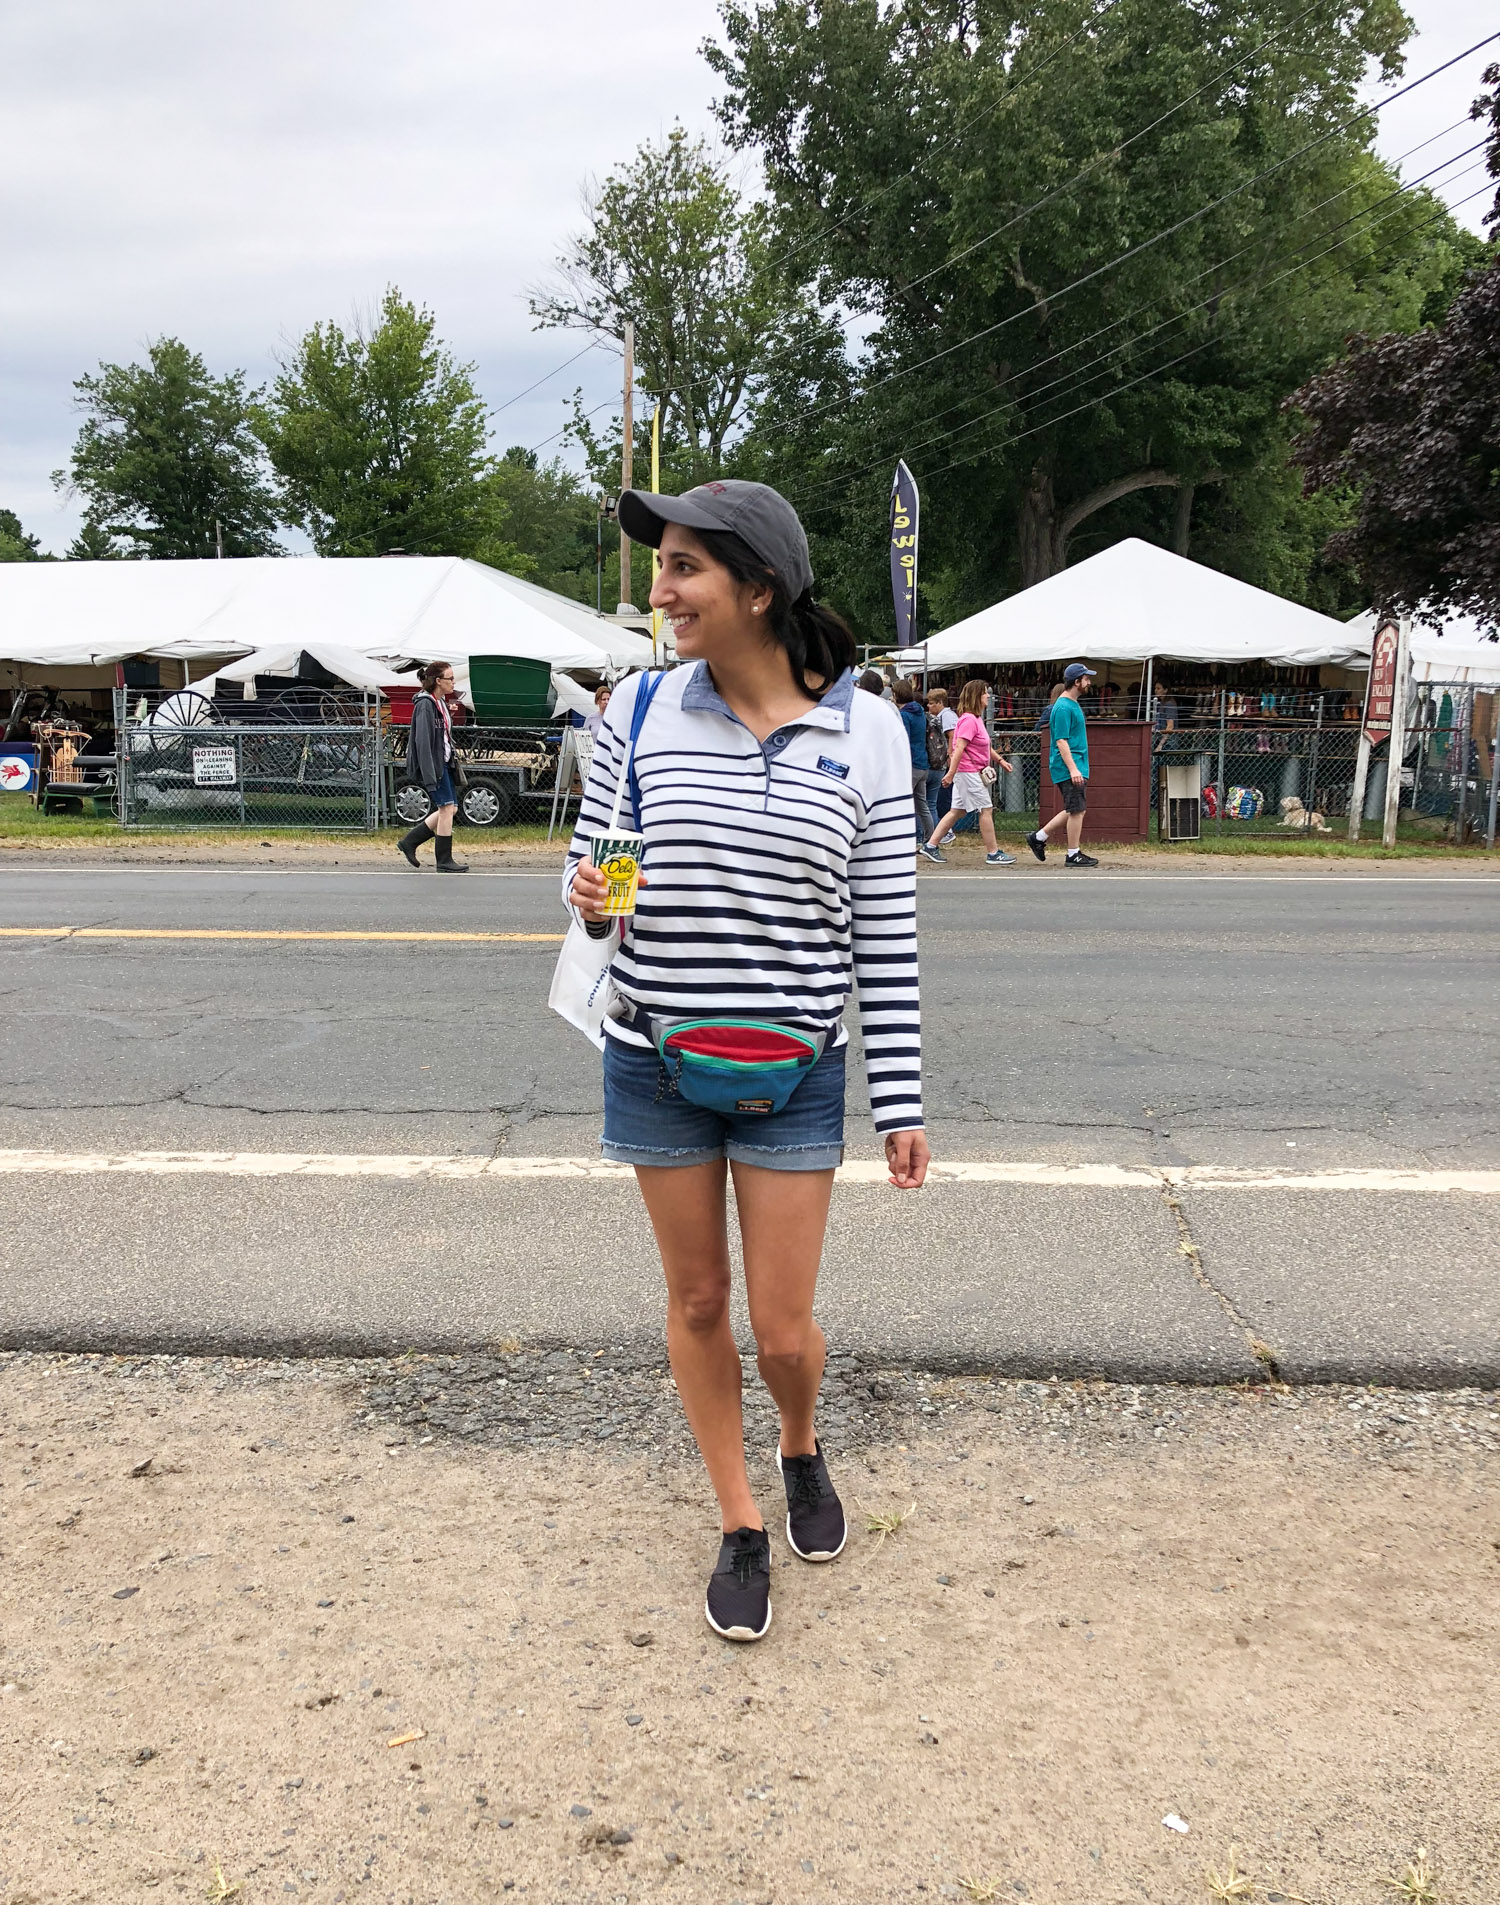 What to know before going to the Brimfield Flea Market